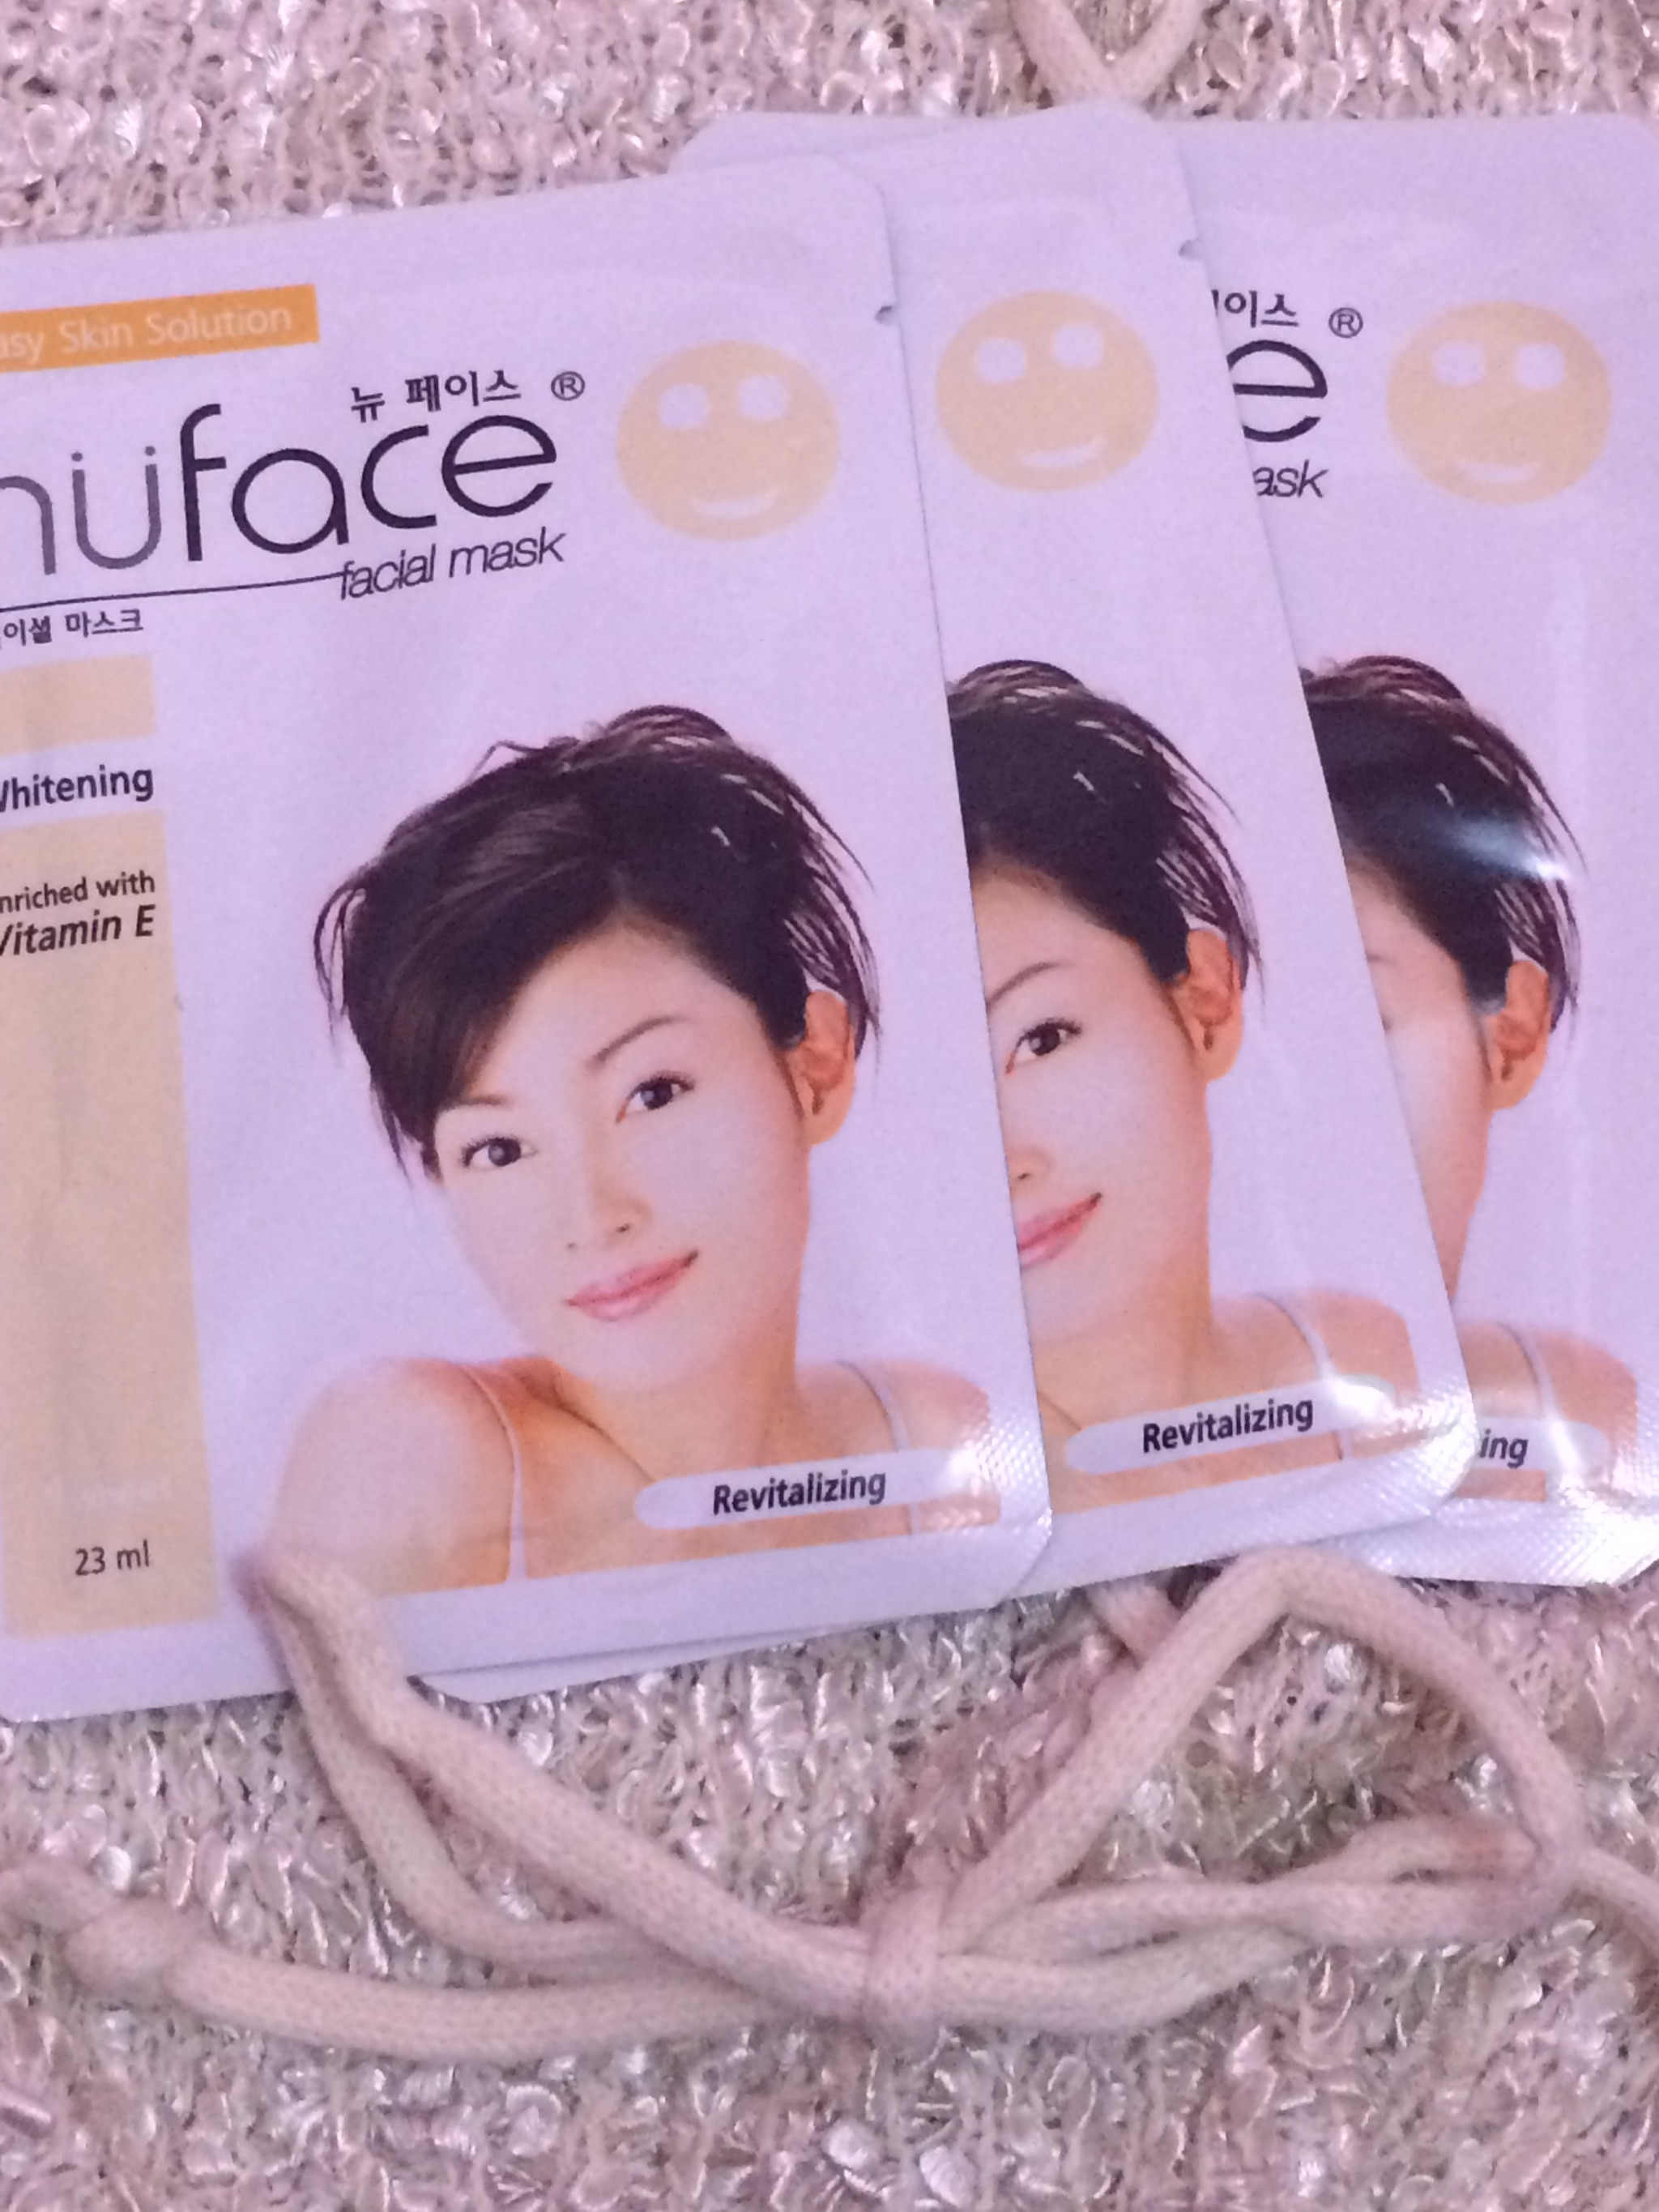 Jual Nu Face Whitening Facial Mask Revitalizing Tiffanynoonashop Nuface Tokopedia